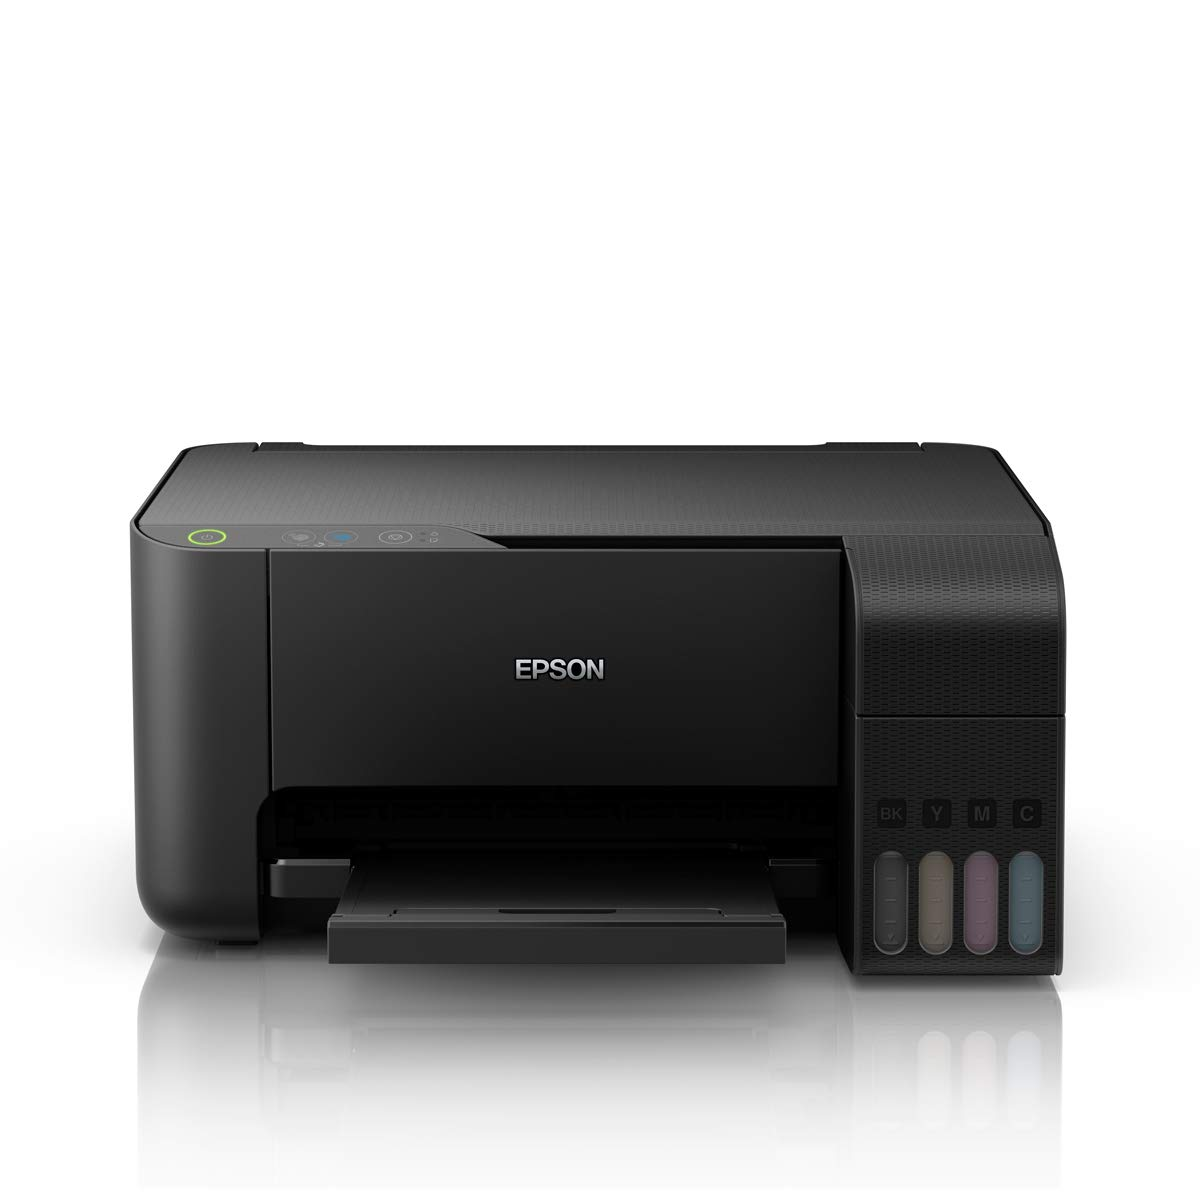 Epson L405 All-in-One Wireless Ink Tank Colour Printer Image